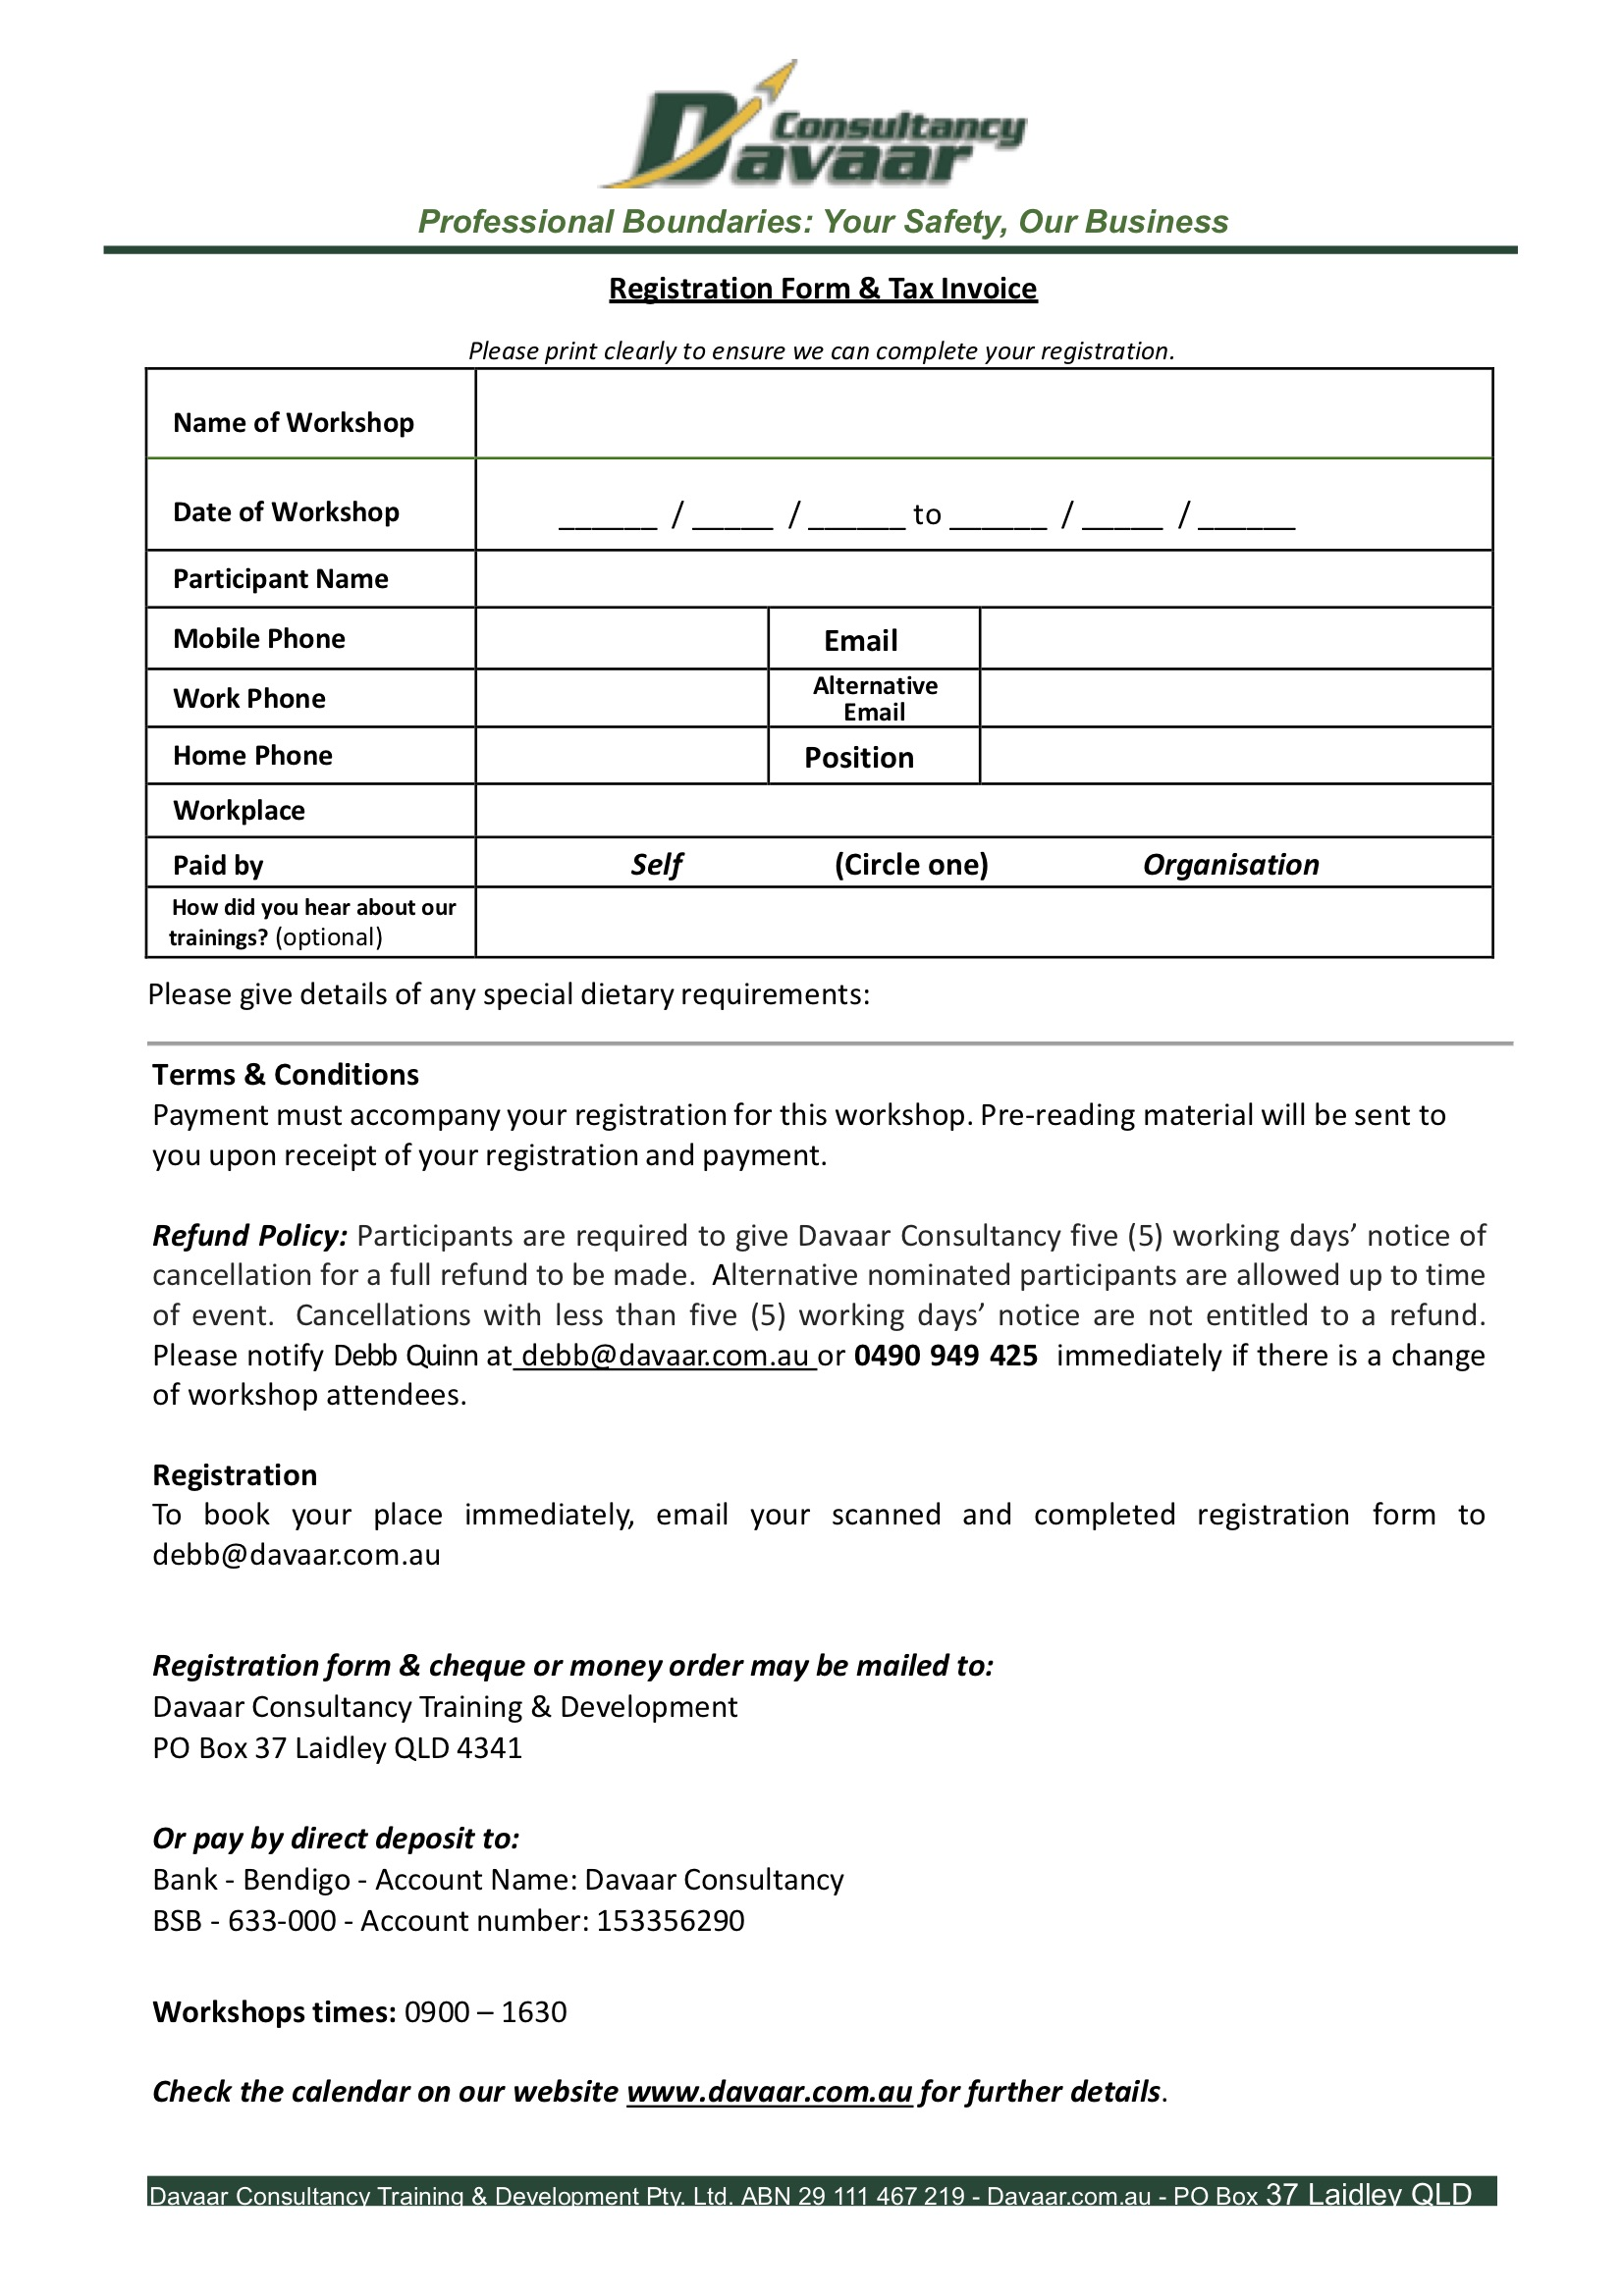 downloadable registration form PDF